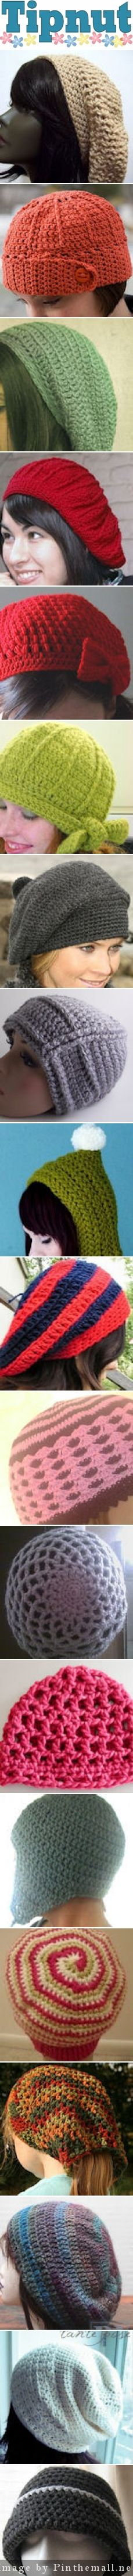 25+ Free Crochet Hat Patterns from TipNut - created via http://pinthemall.net